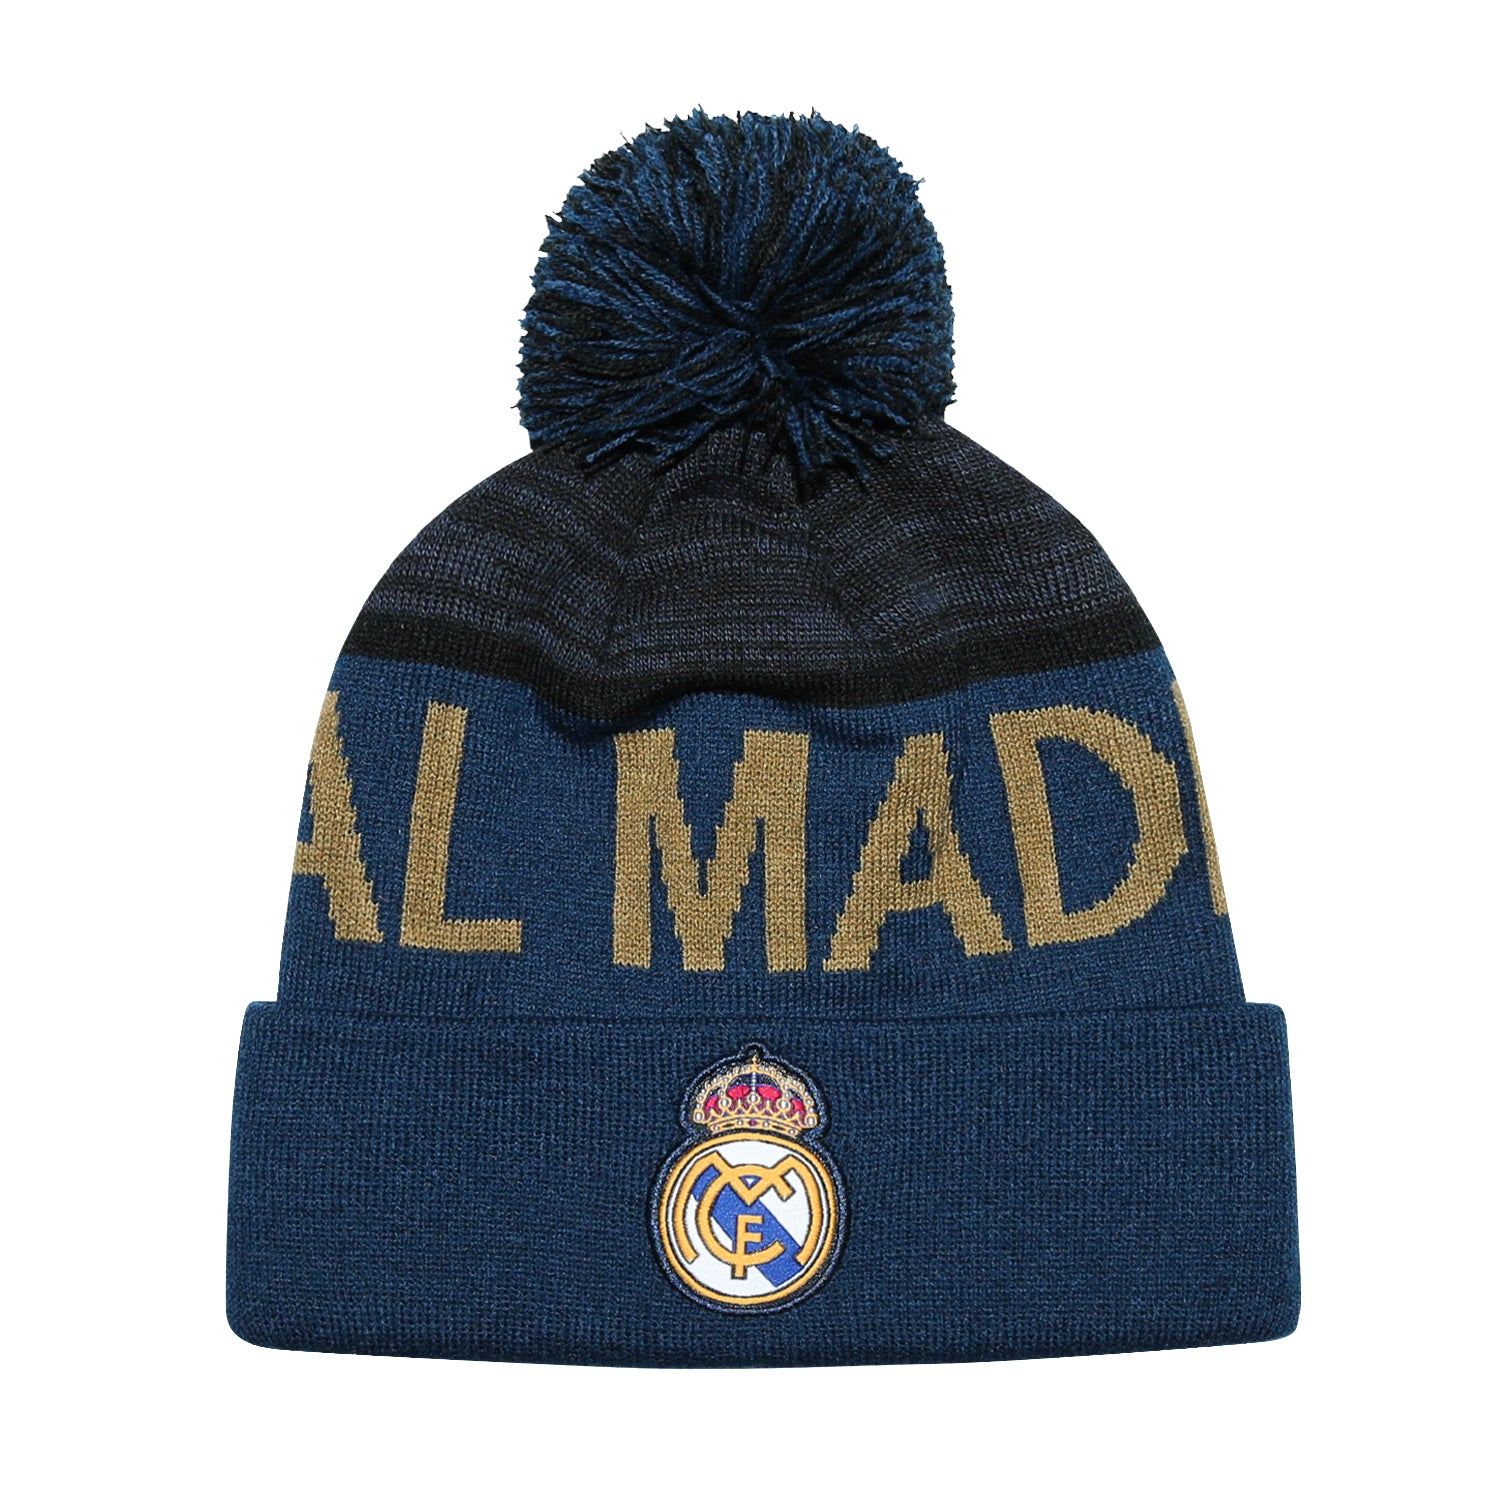 Real Madrid Cuff Pom Beanie - Navy Cuff by Icon Sports